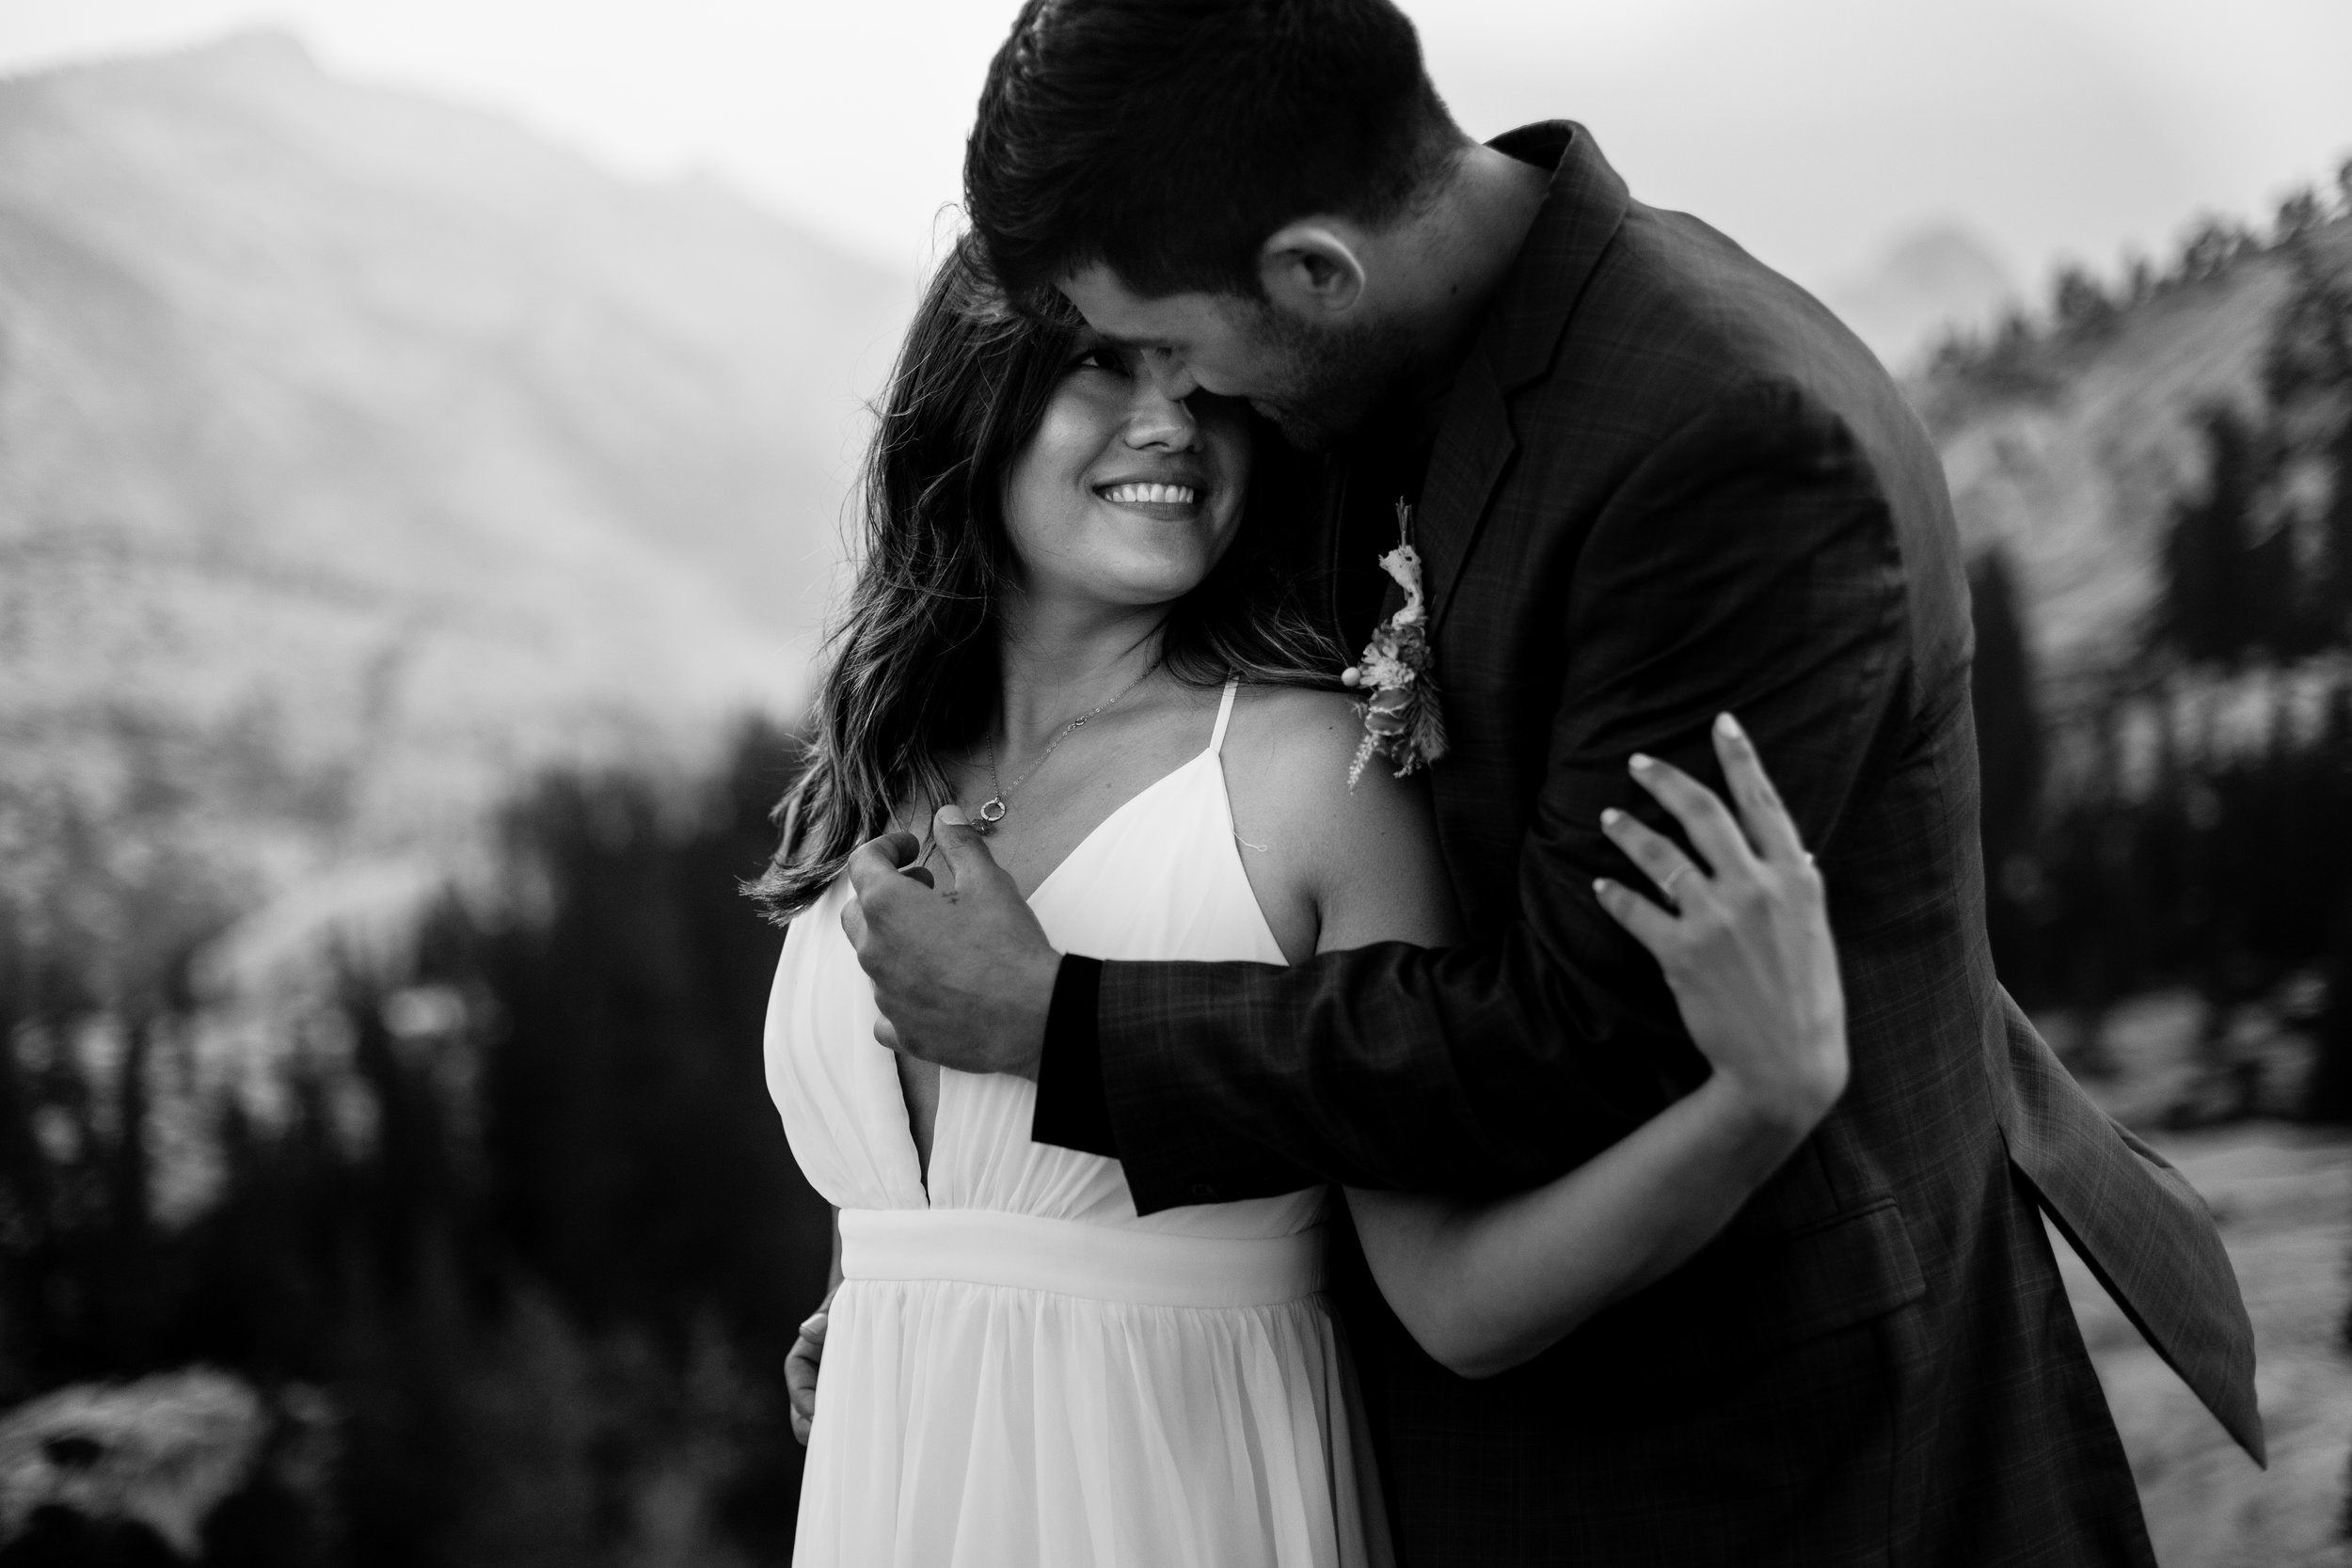 nicole-daacke-photography-yosemite-national-park-fall-elopement-adventurous-free-spirit-boho-bohemian-elopement-olmsted-point-yosemite-california-elope-adventure-elopement-photographer-64.jpg